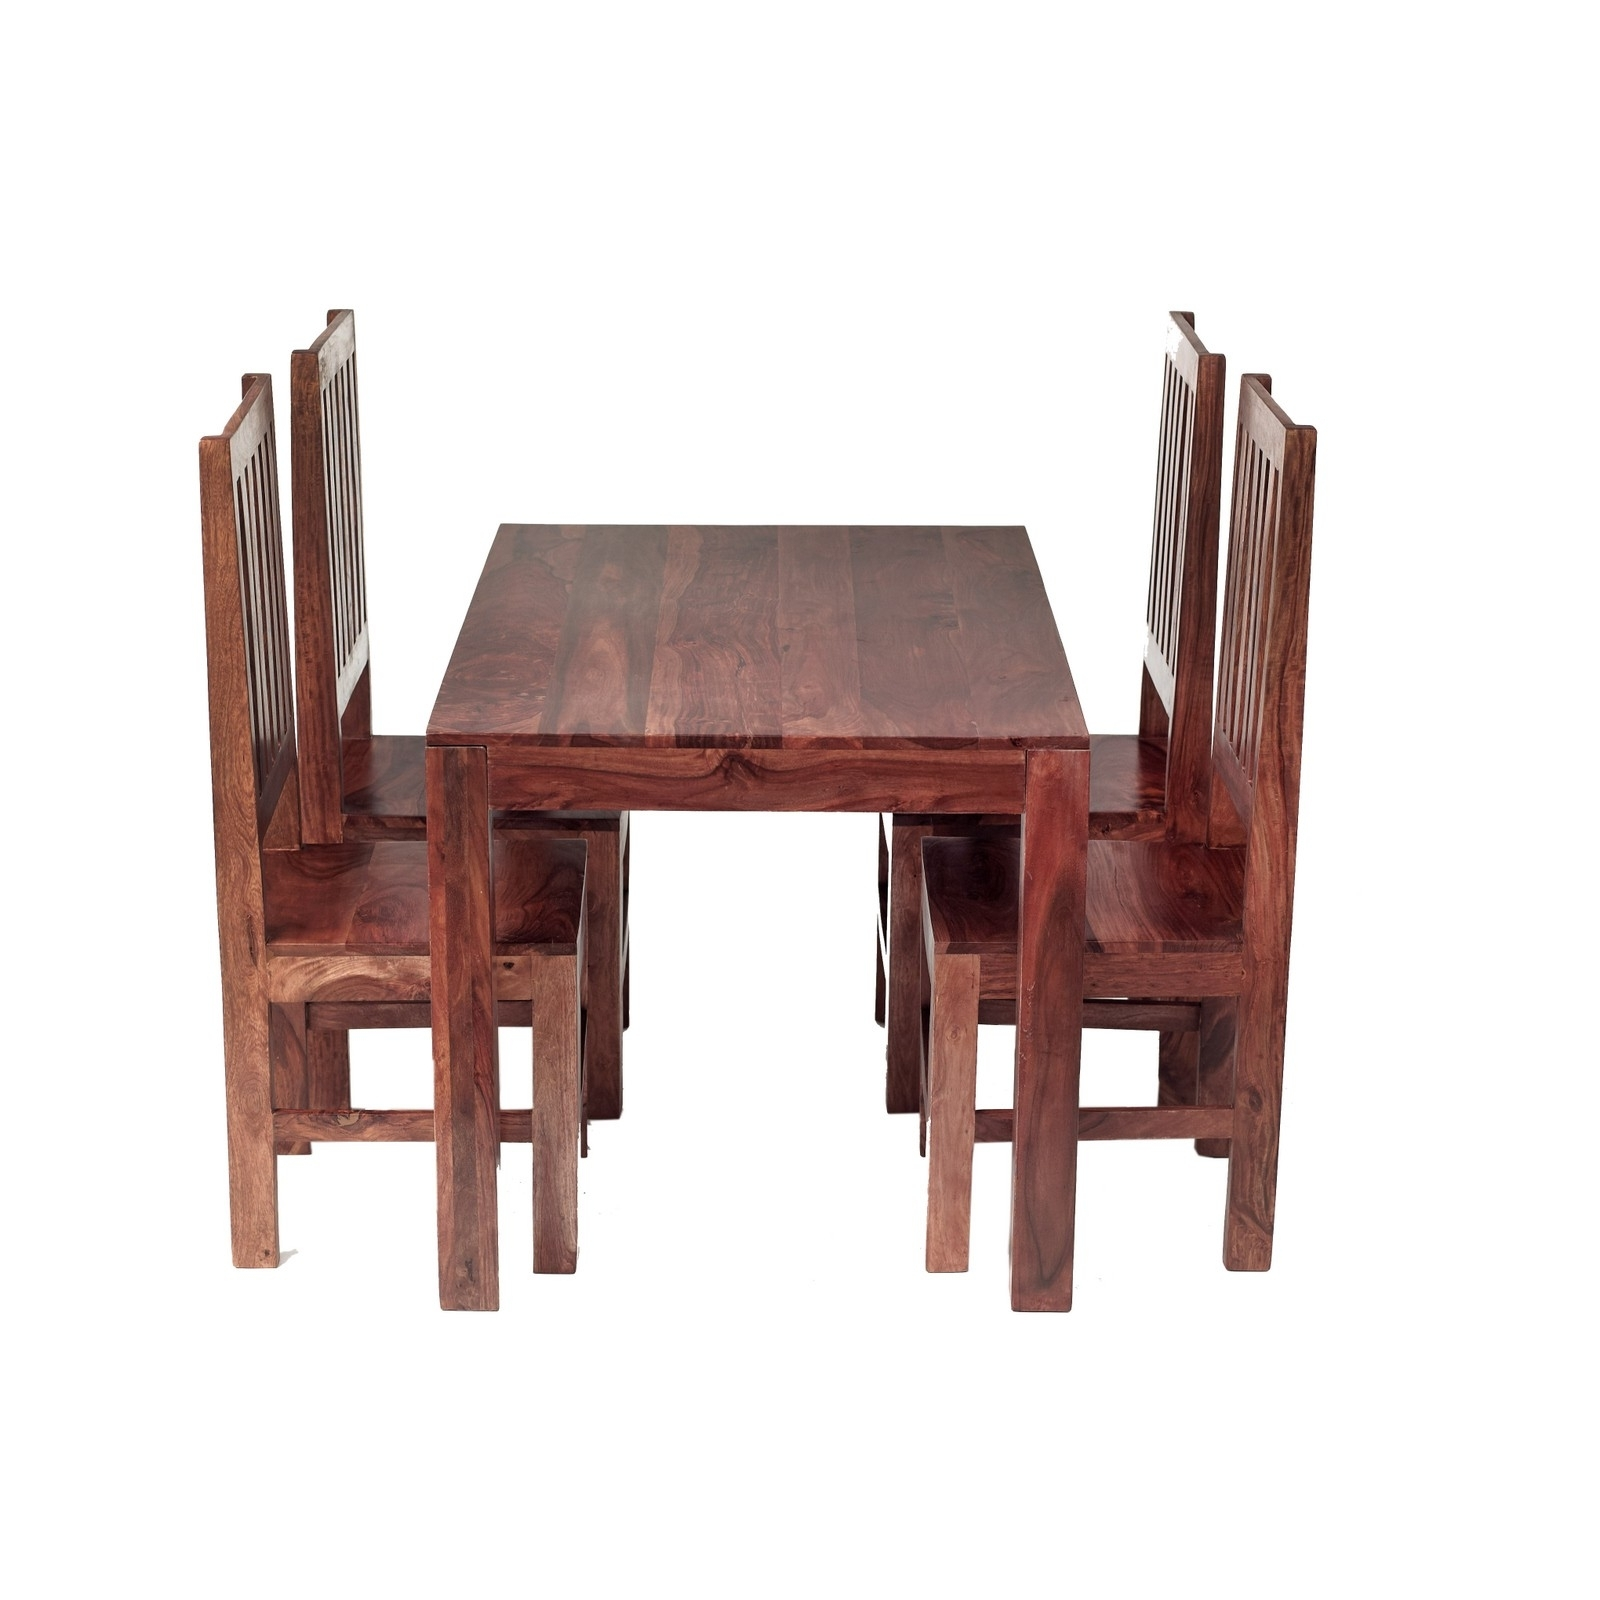 Fashionable Cube Sheesham 4 Ft Dining Set With Wooden Chairs – Verty Indian With Regard To Indian Dining Chairs (View 11 of 25)